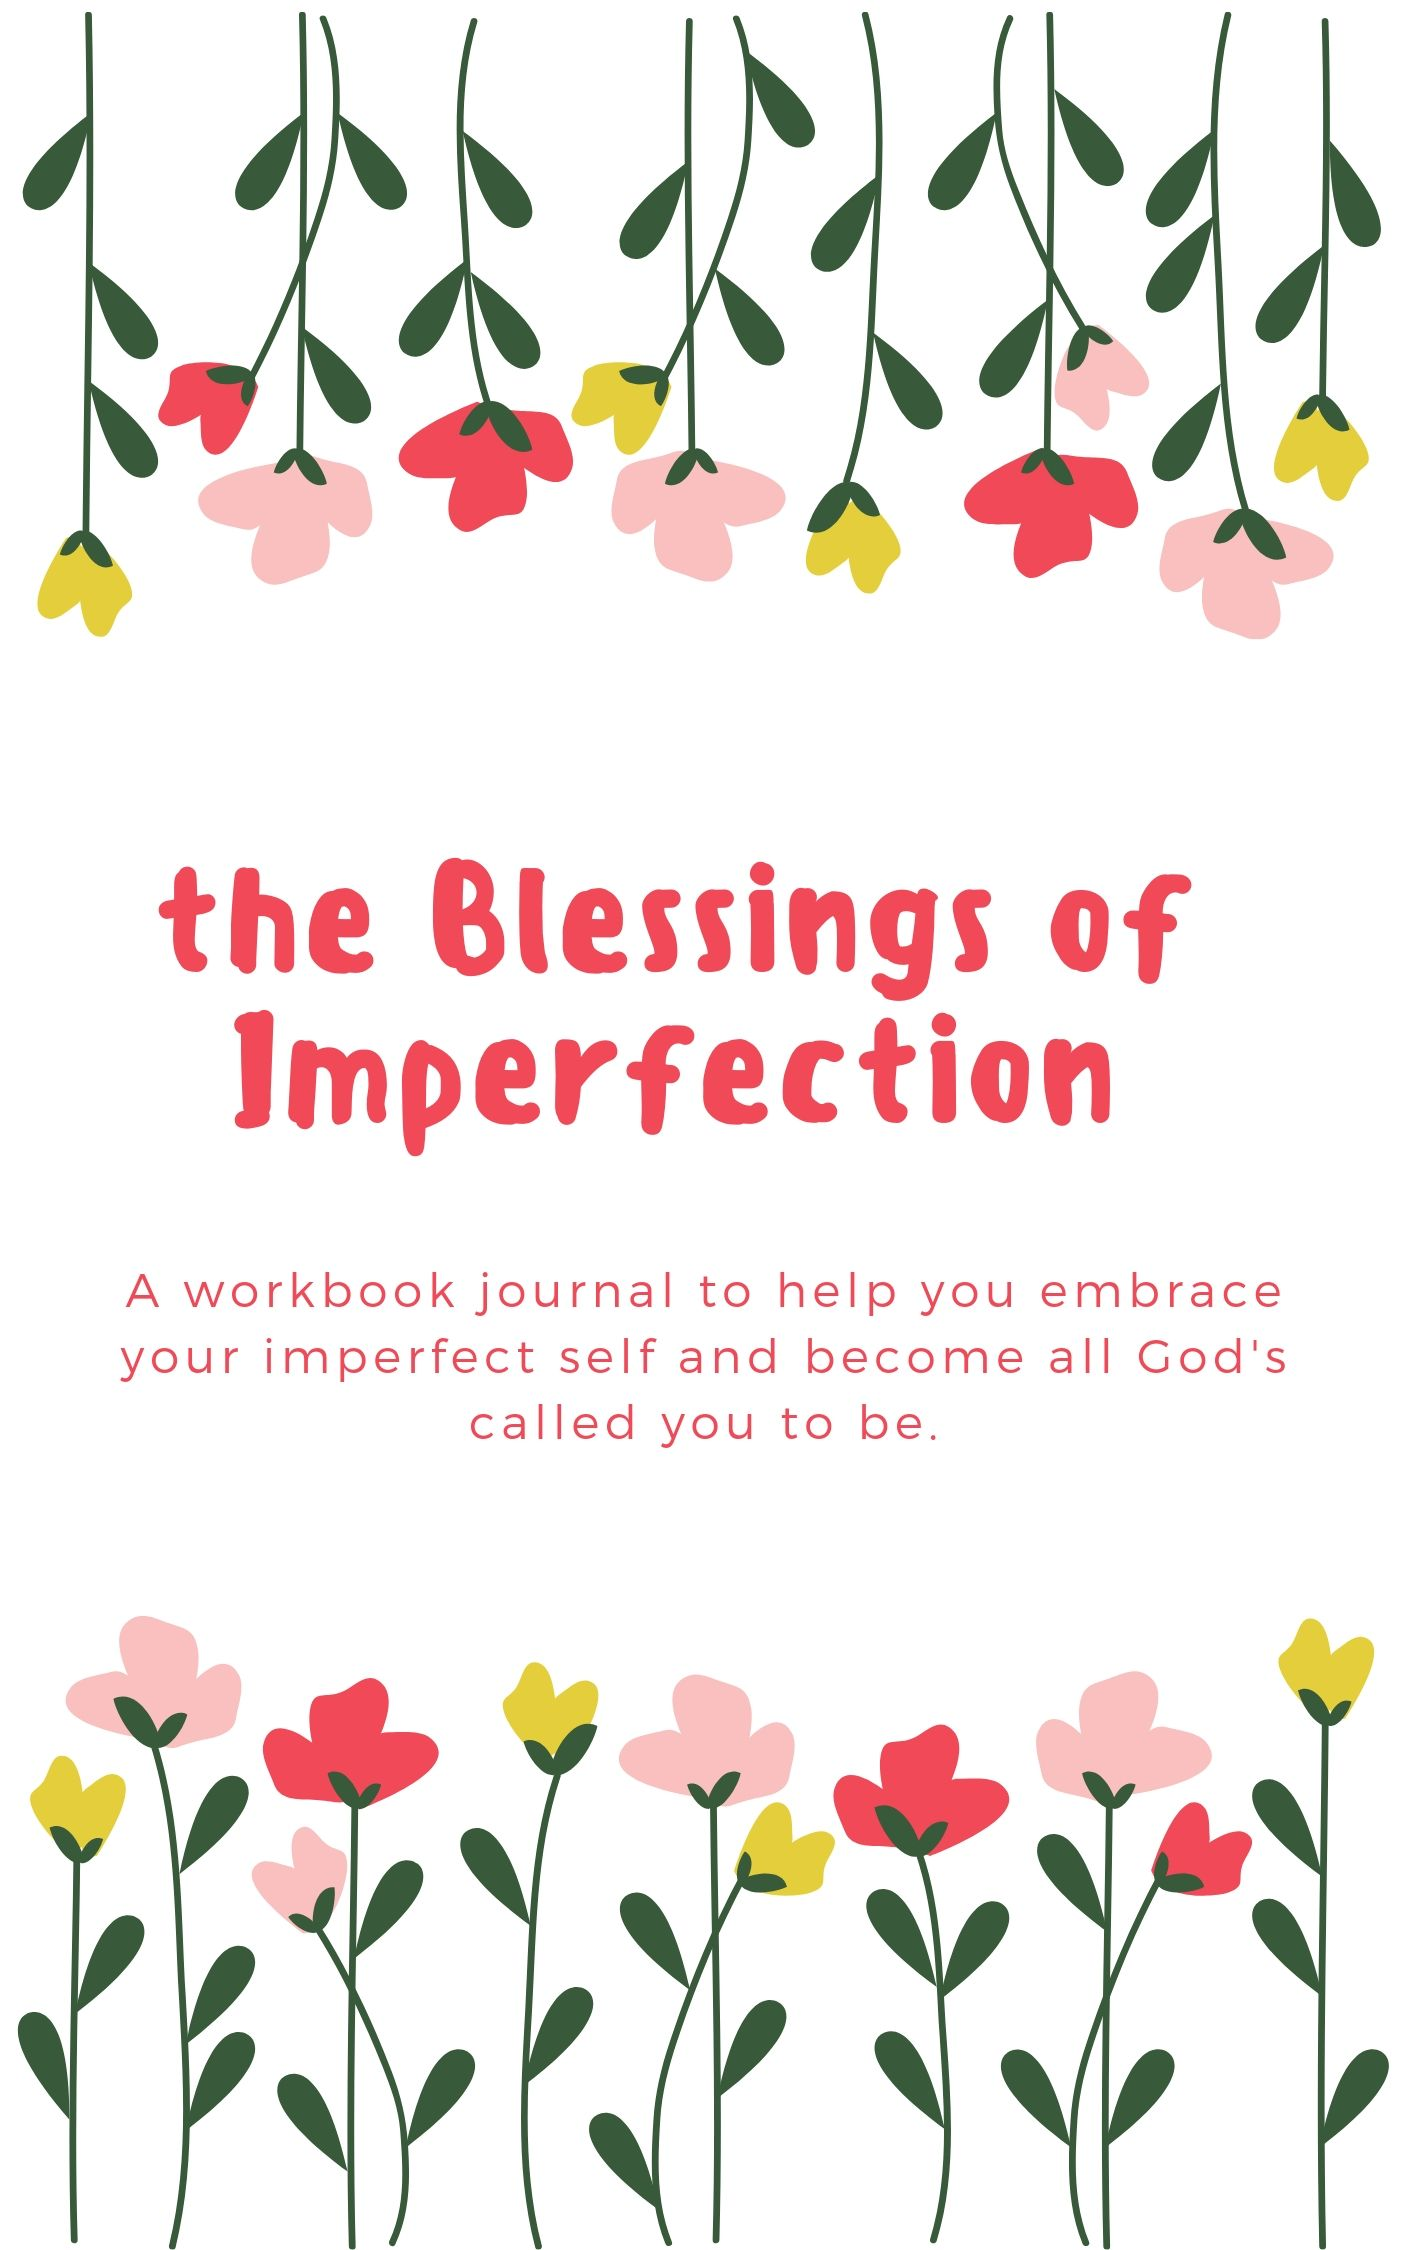 the Blessings of Imperfection.jpg